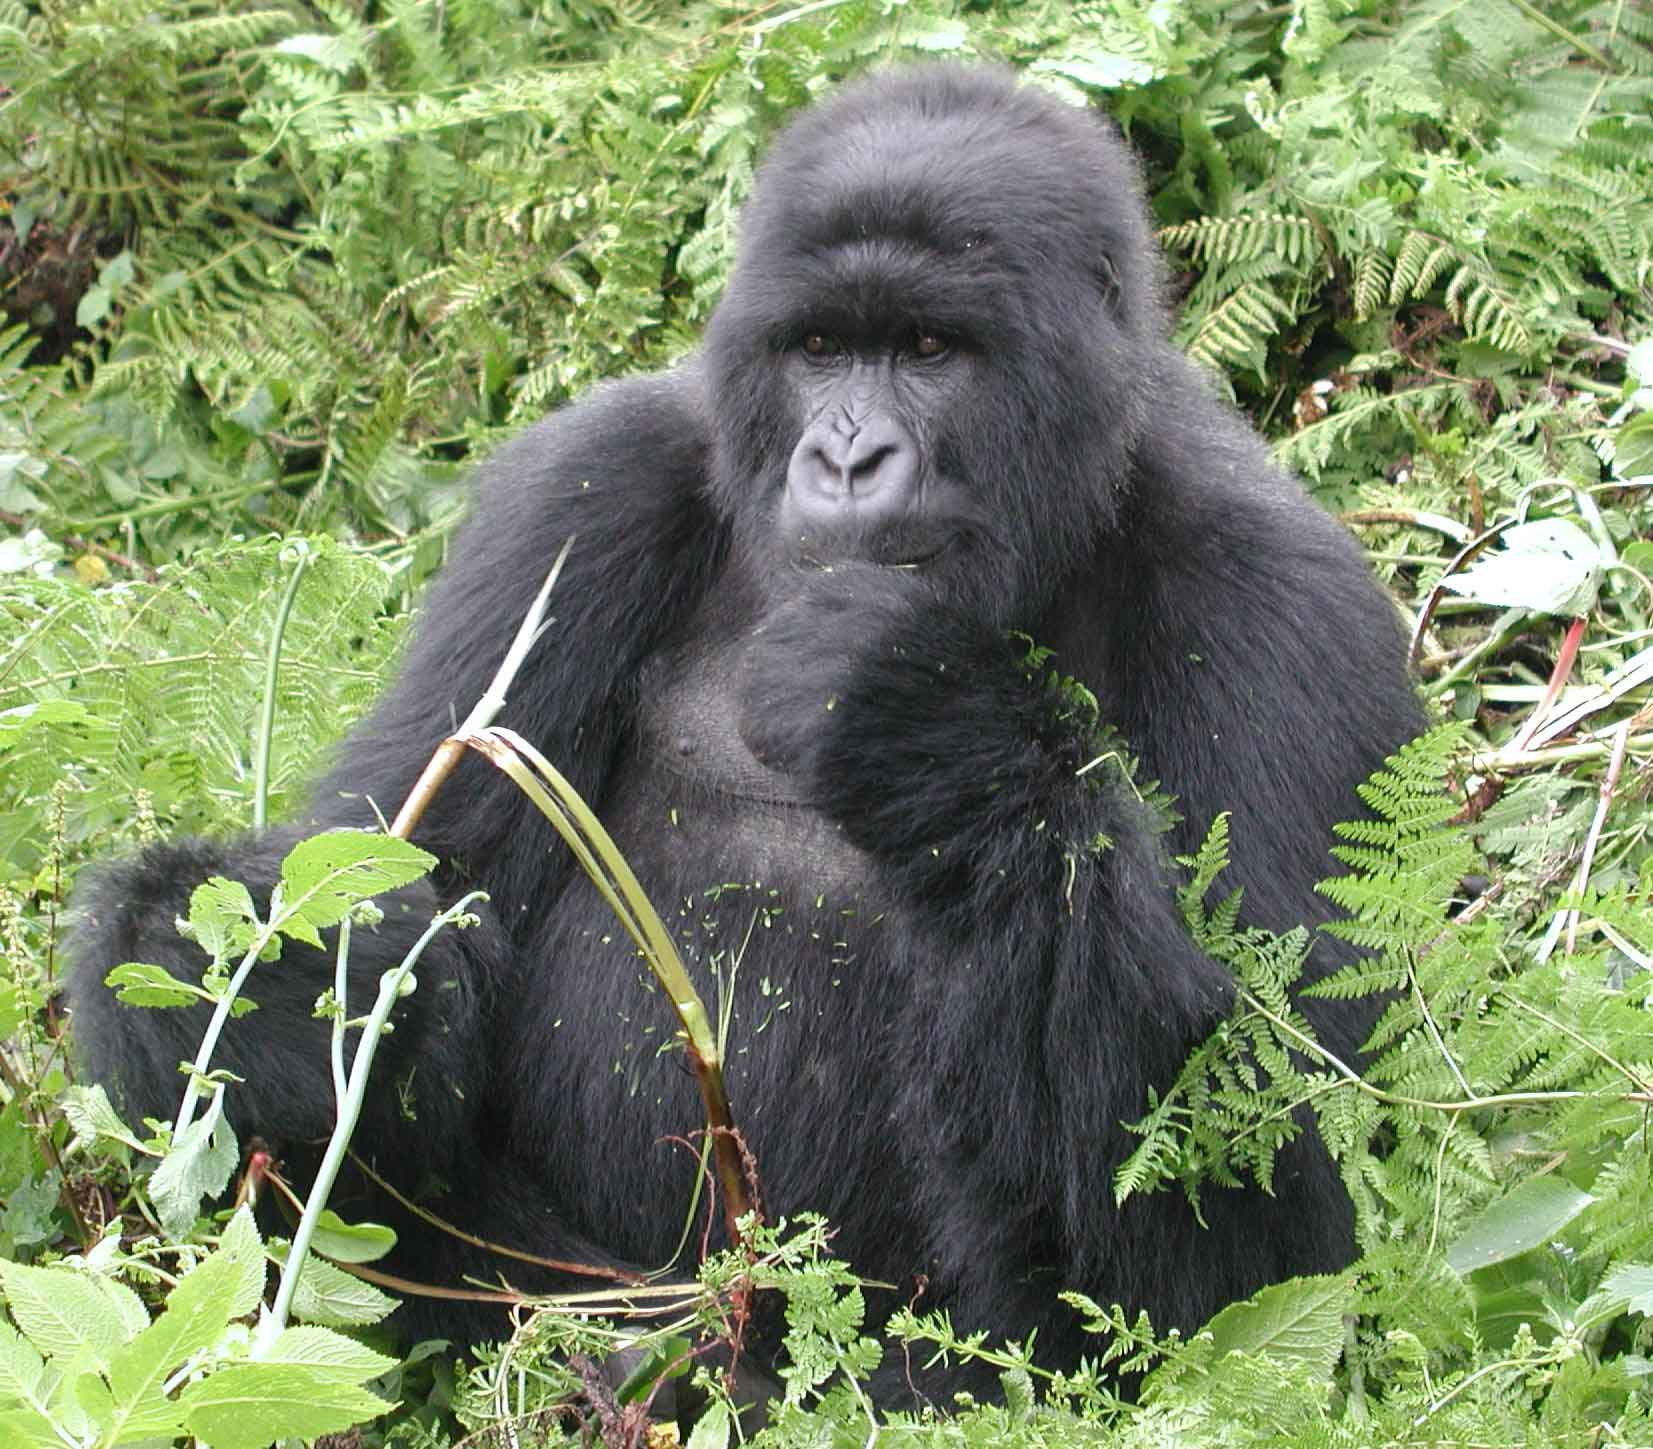 Mountain gorillas safari for only US$718! visit www.gorillasandwildlifesafaris.com